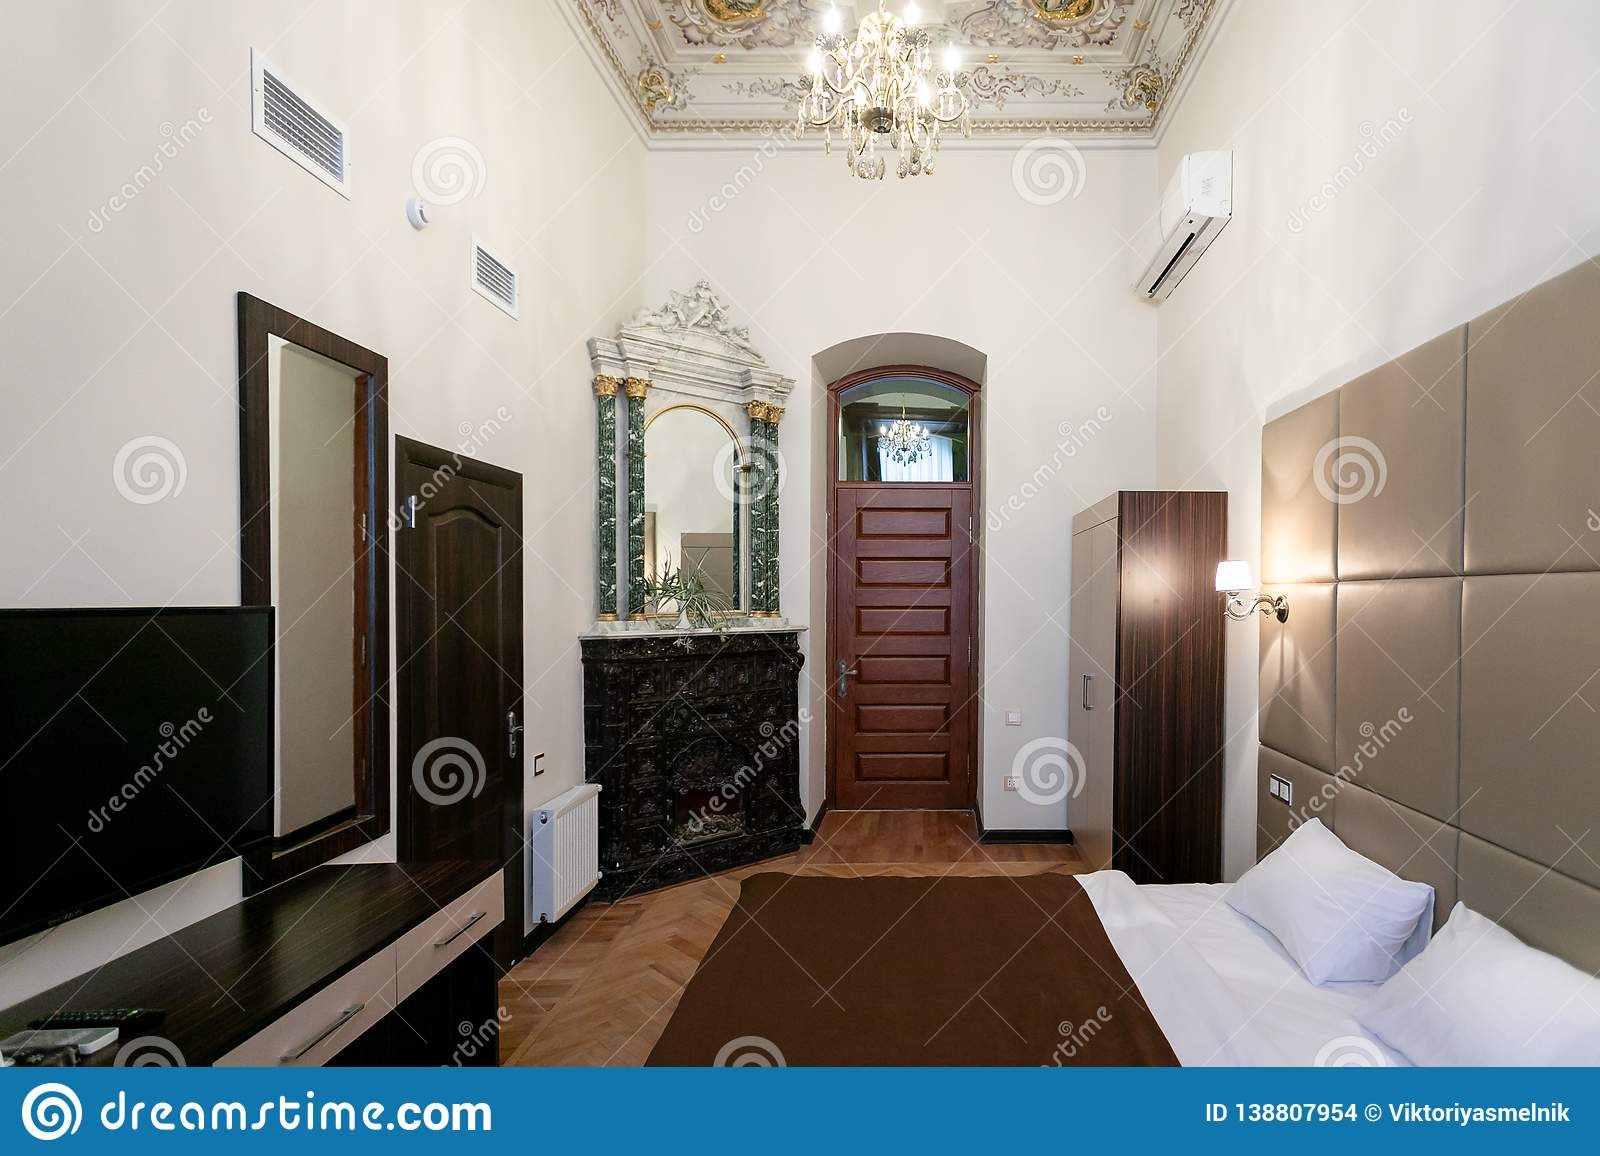 Room with a double bed, TV, mirror on the wall, vintage fireplace, laminate floor, access to the bathroom and hallway, with hand-p